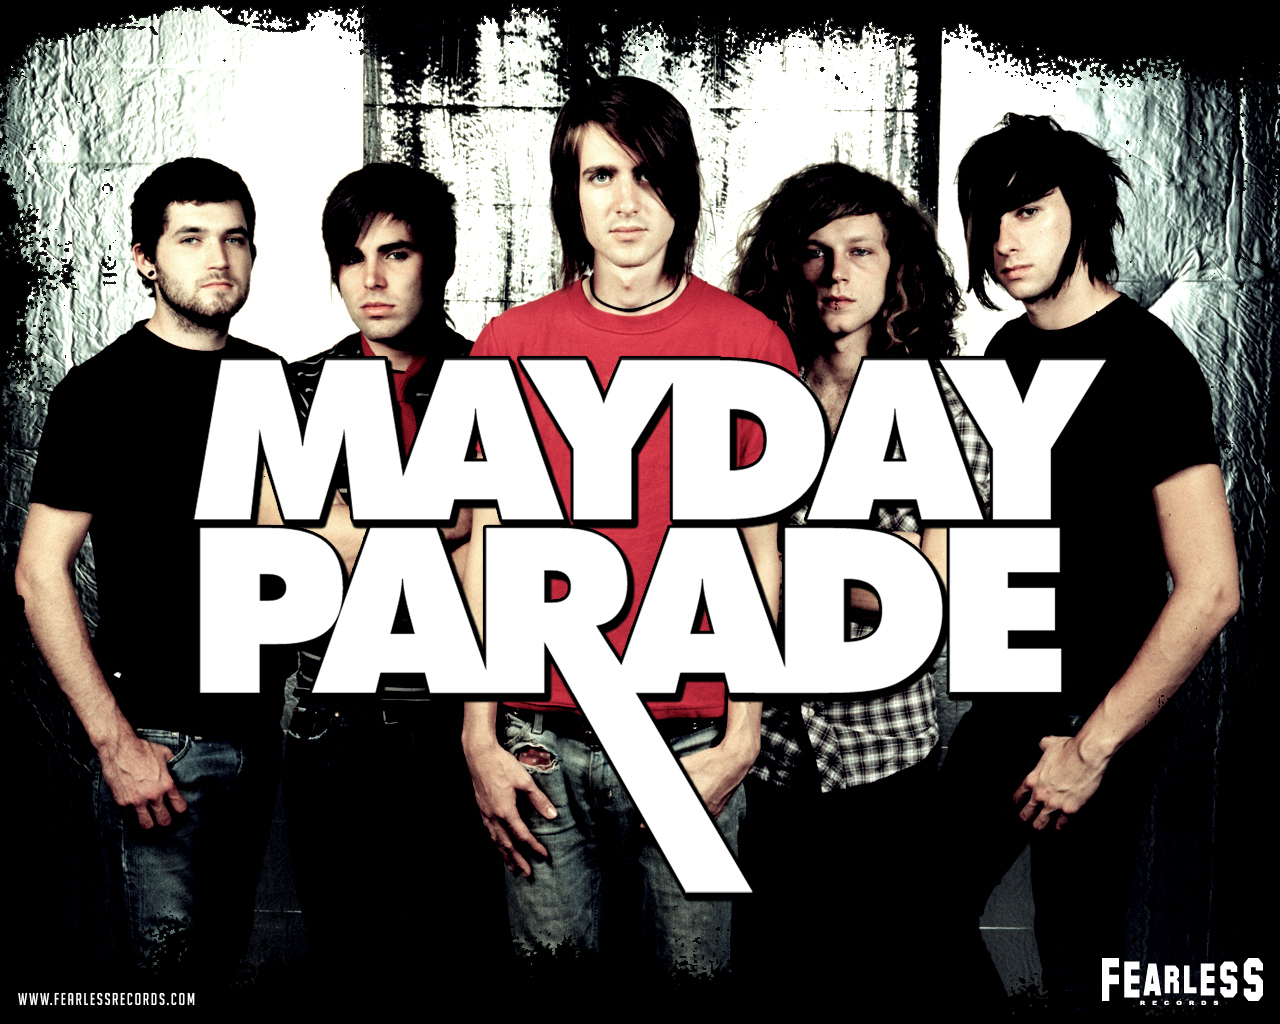 Download Mayday Parade Wallpaper Gallery | 1280 x 1024 jpeg 838kB